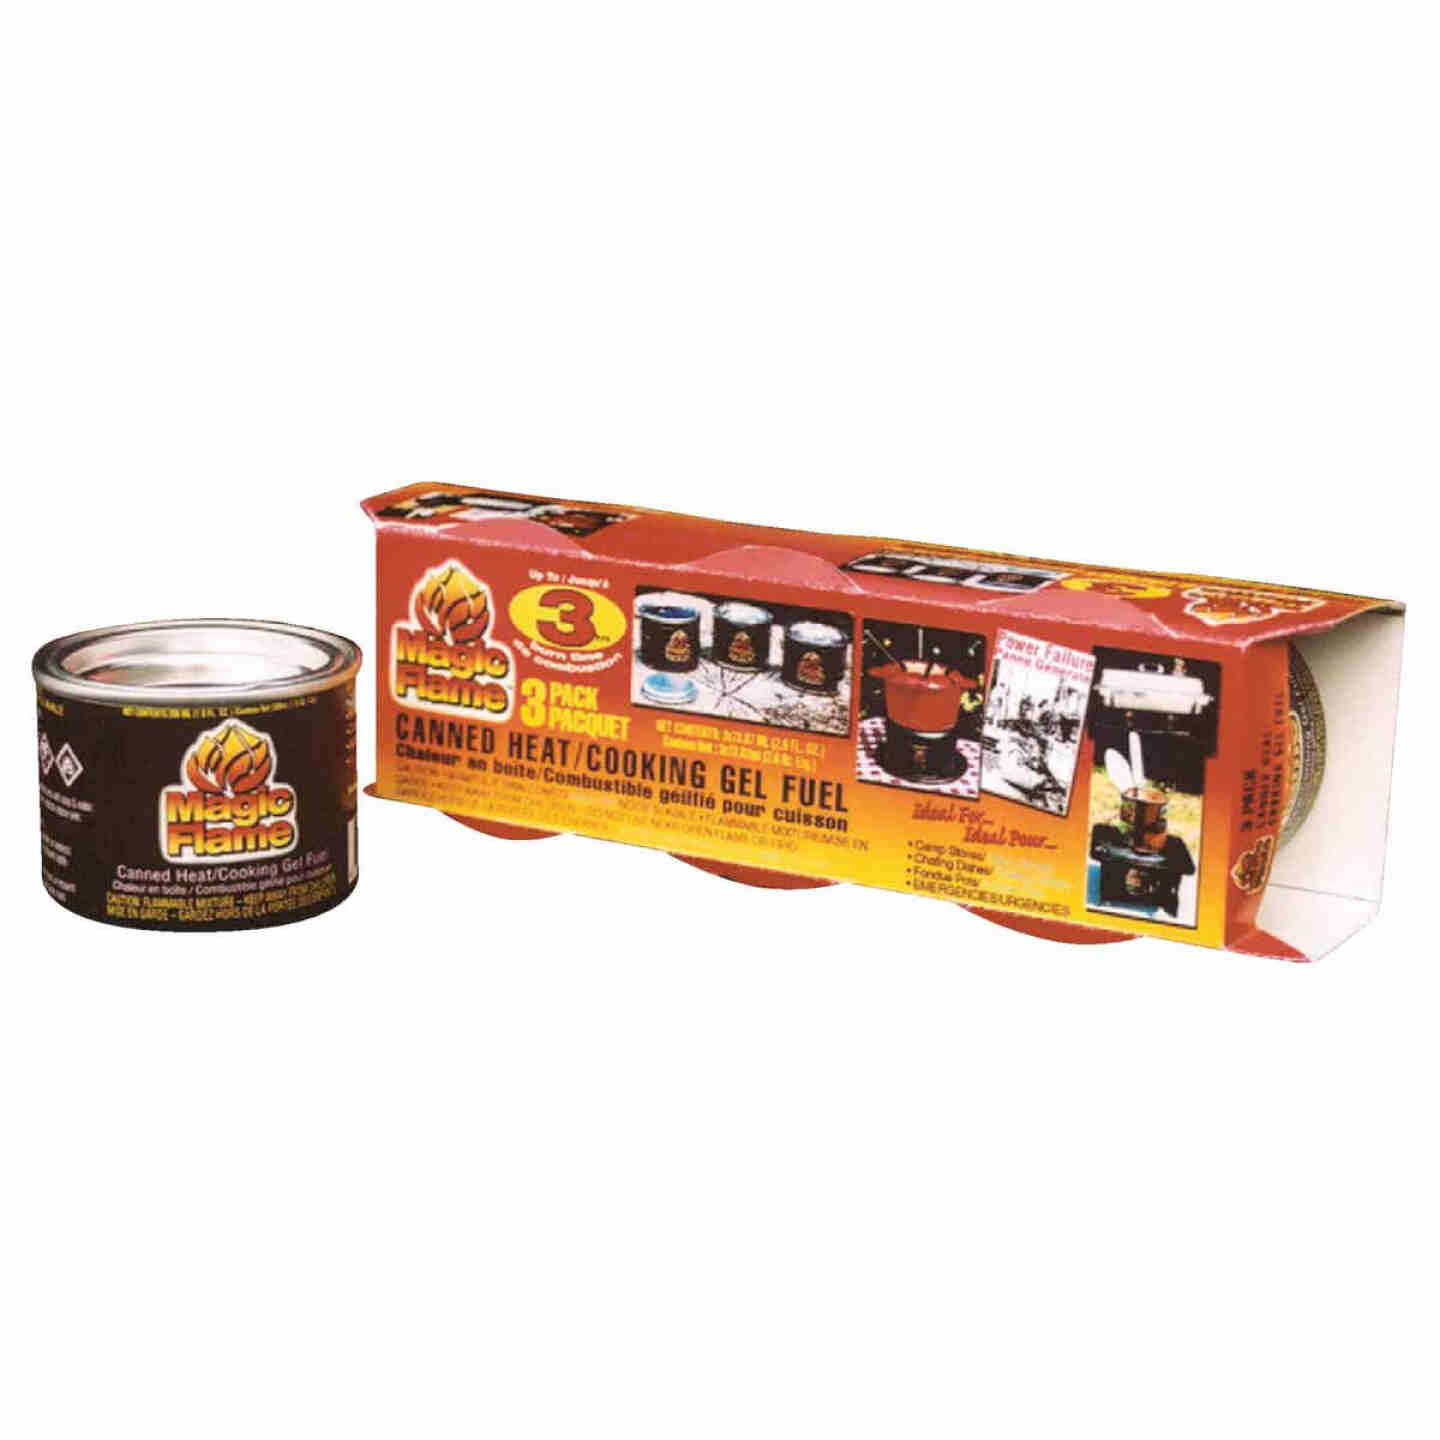 Scientific Utility Magic Flame 2.6 Oz. Canned Cooking Fuel (3-Pack) Image 1